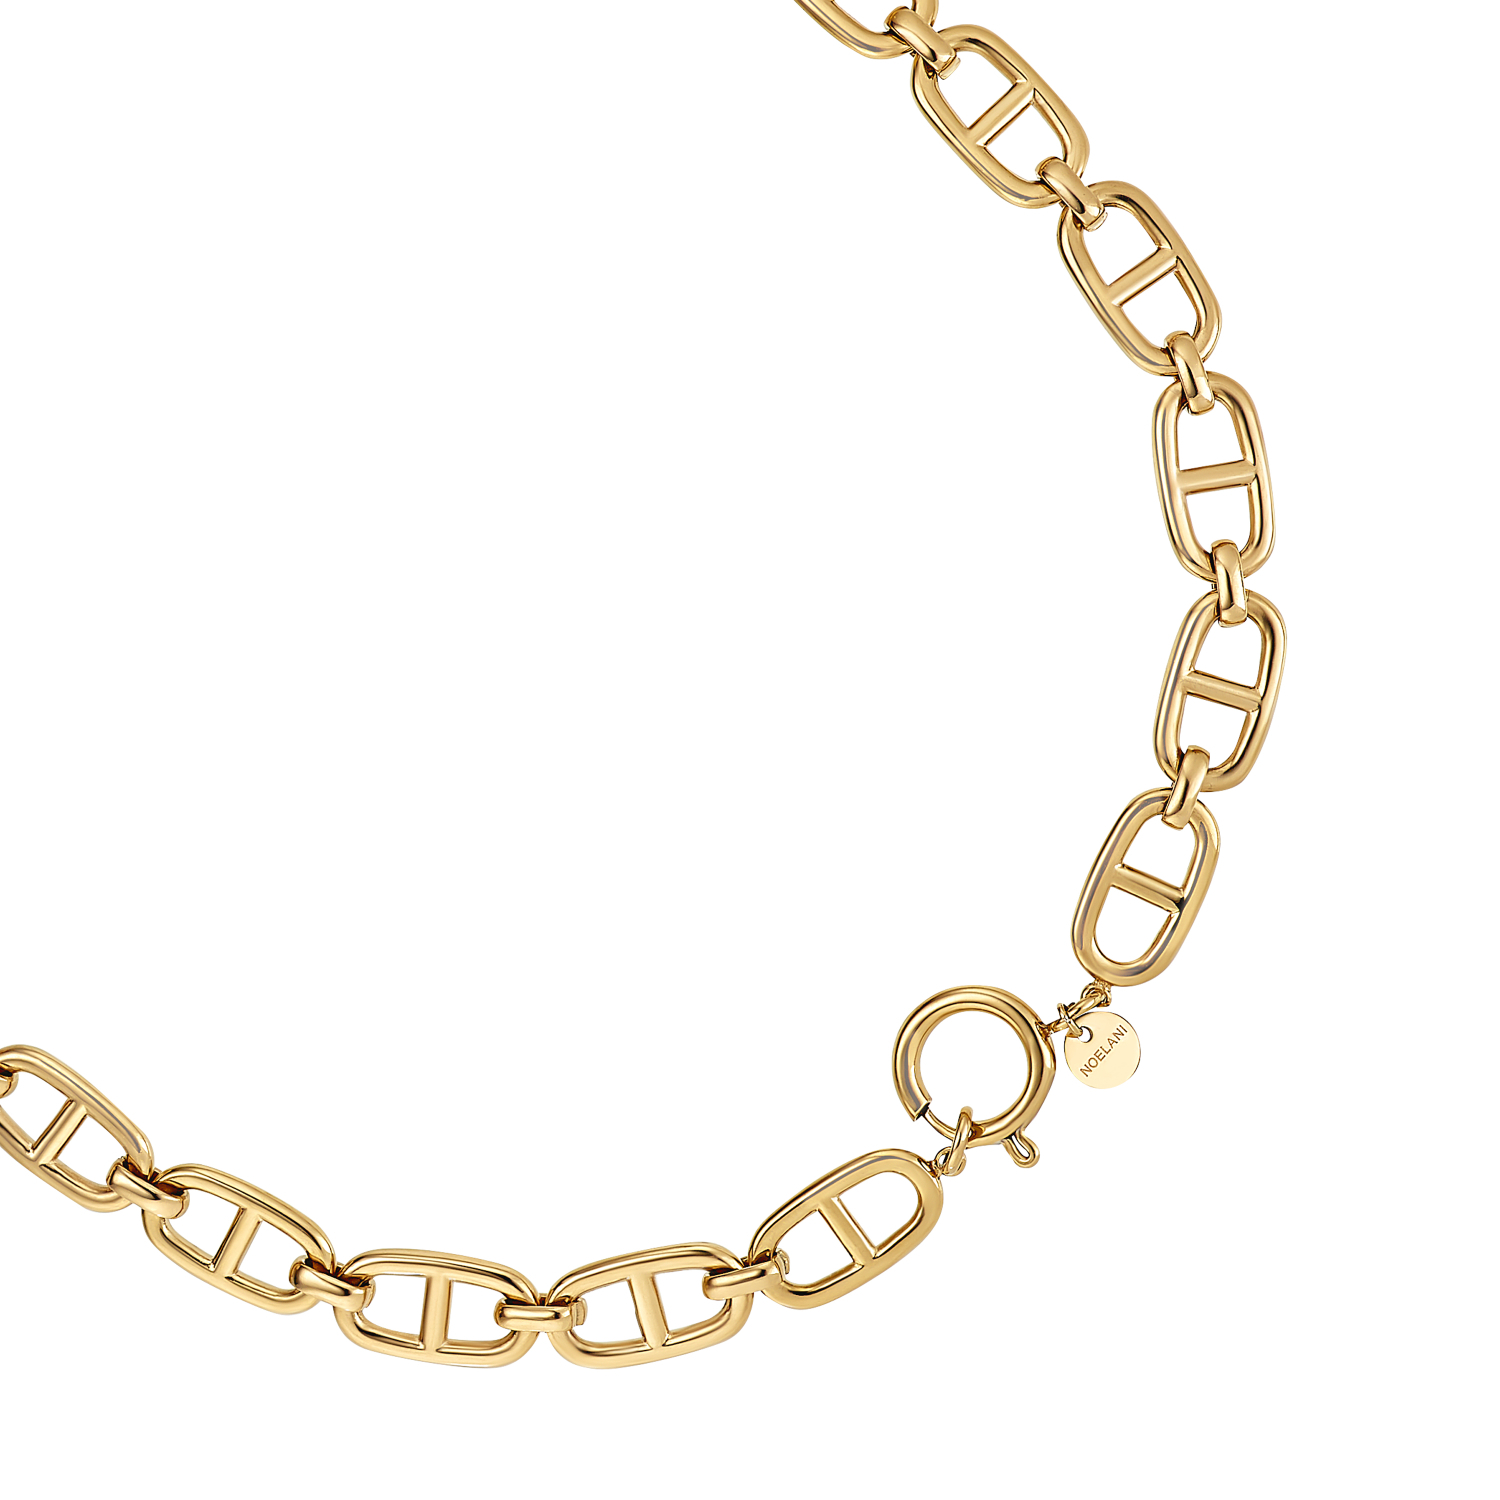 BRIDGE LINK KETTE GOLD